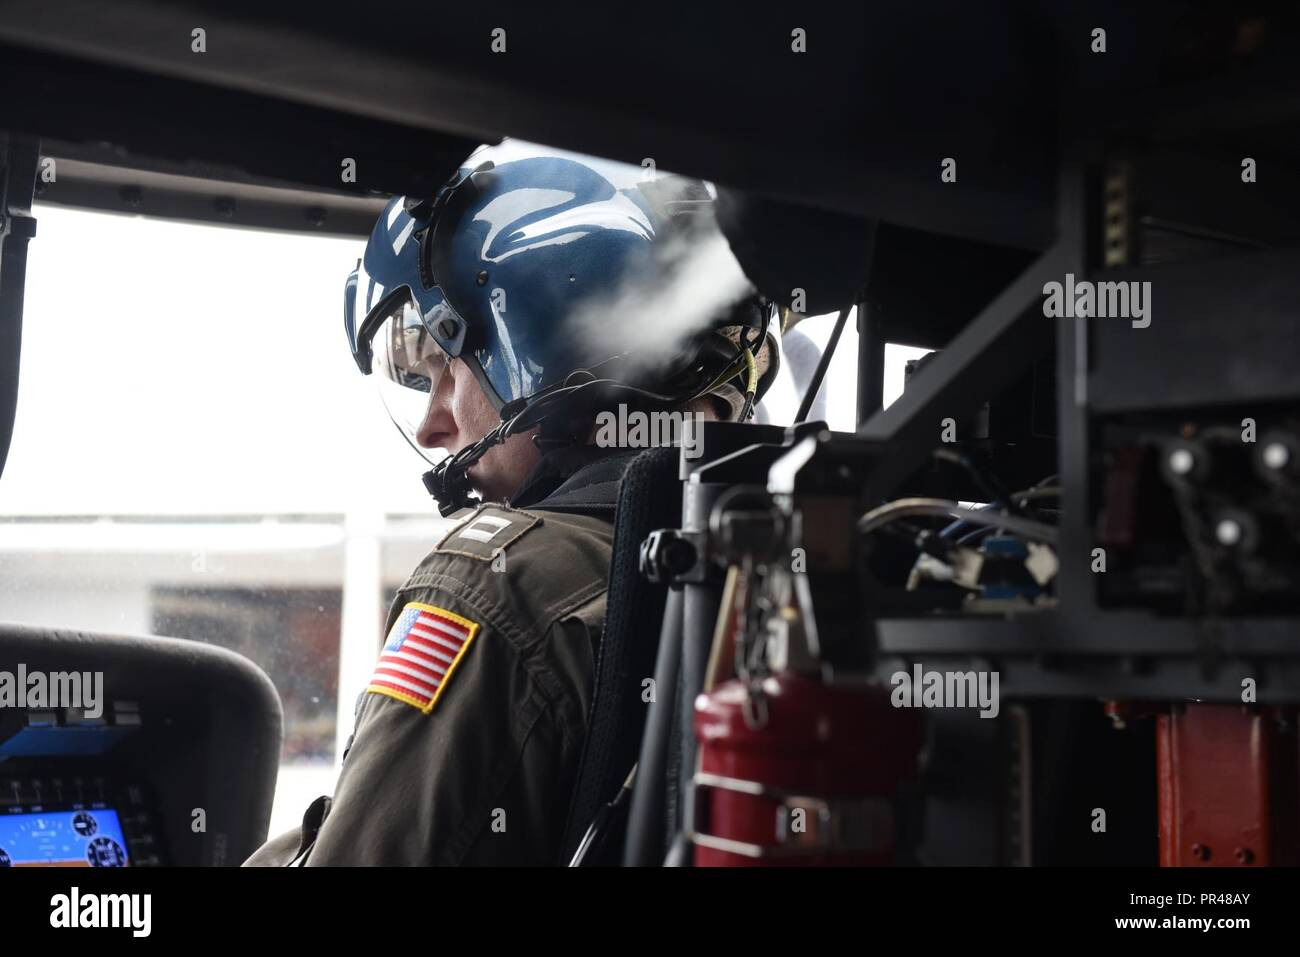 Coast Guard Lt. Kyle Johnson, a member of a flight crew from Clearwater, Florida, conducts preparation checks Saturday, Sept. 15, 2018, before departing Coast Guard Air Station Savannah. The air crew flew an MH-60 Jayhawk helicopter over Myrtle Beach, South Carolina to assess the damage and flooding from Hurricane Florence. Stock Photo